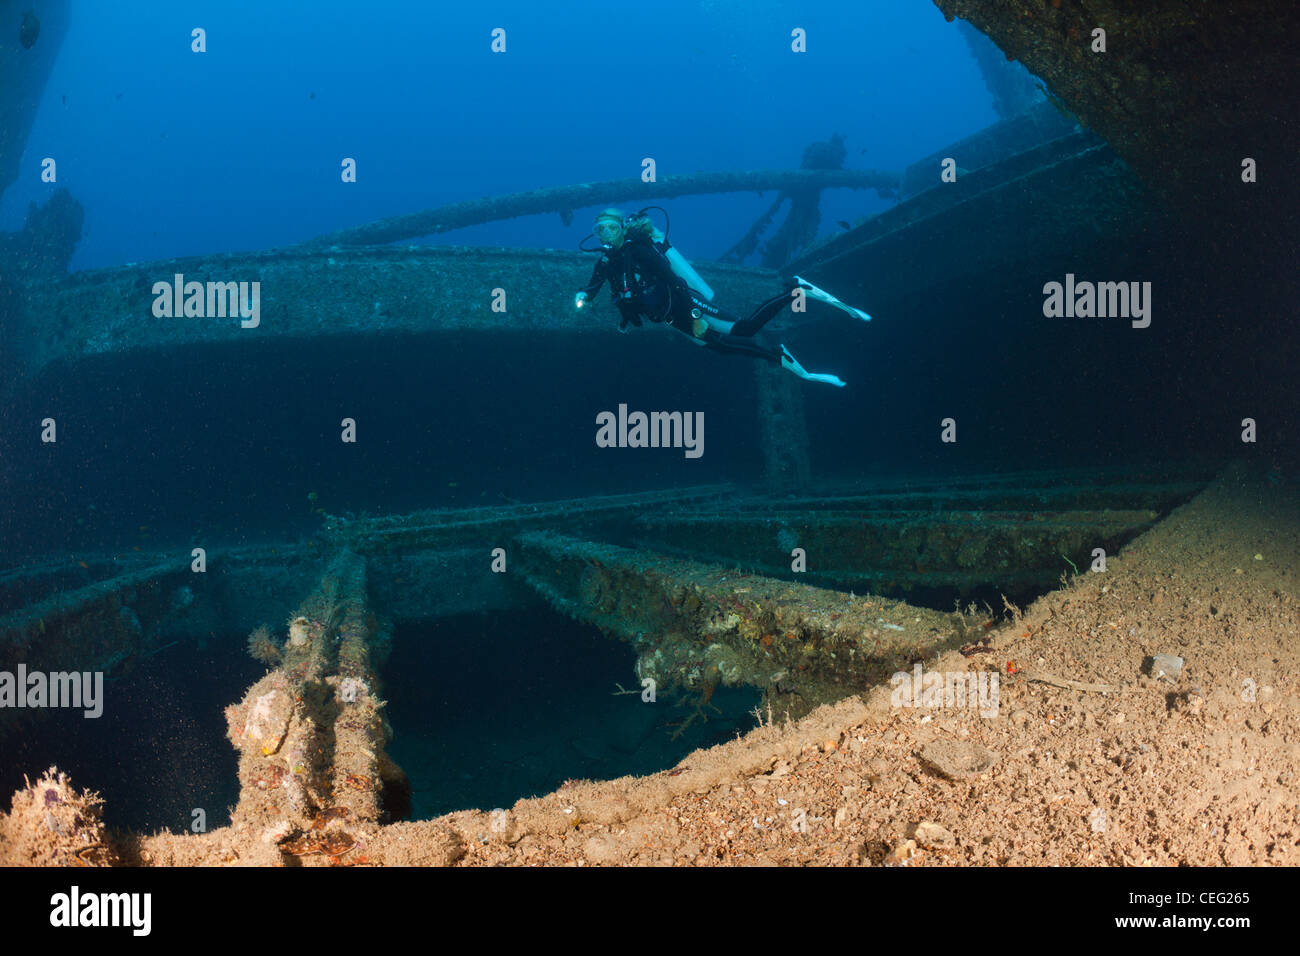 Scuba Diver over Cargo Space of Maldive Victory Wreck, North Male Atoll, Indian Ocean, Maldives - Stock Image